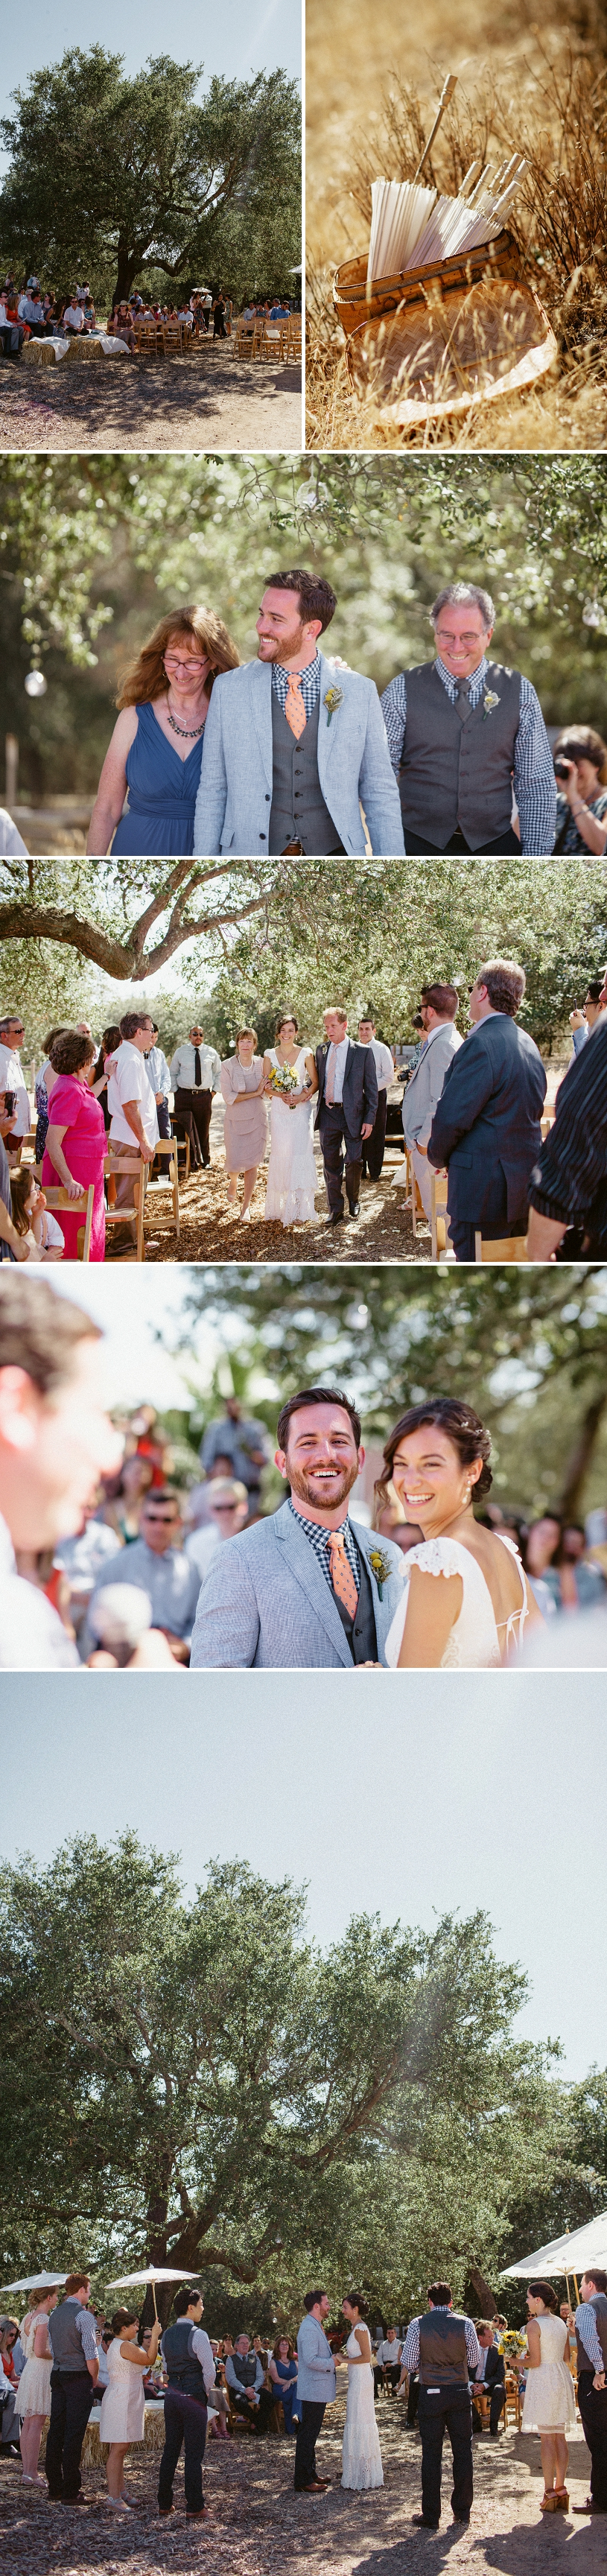 Sweet intimate wedding ceremony under an oak tree in Healdsburg